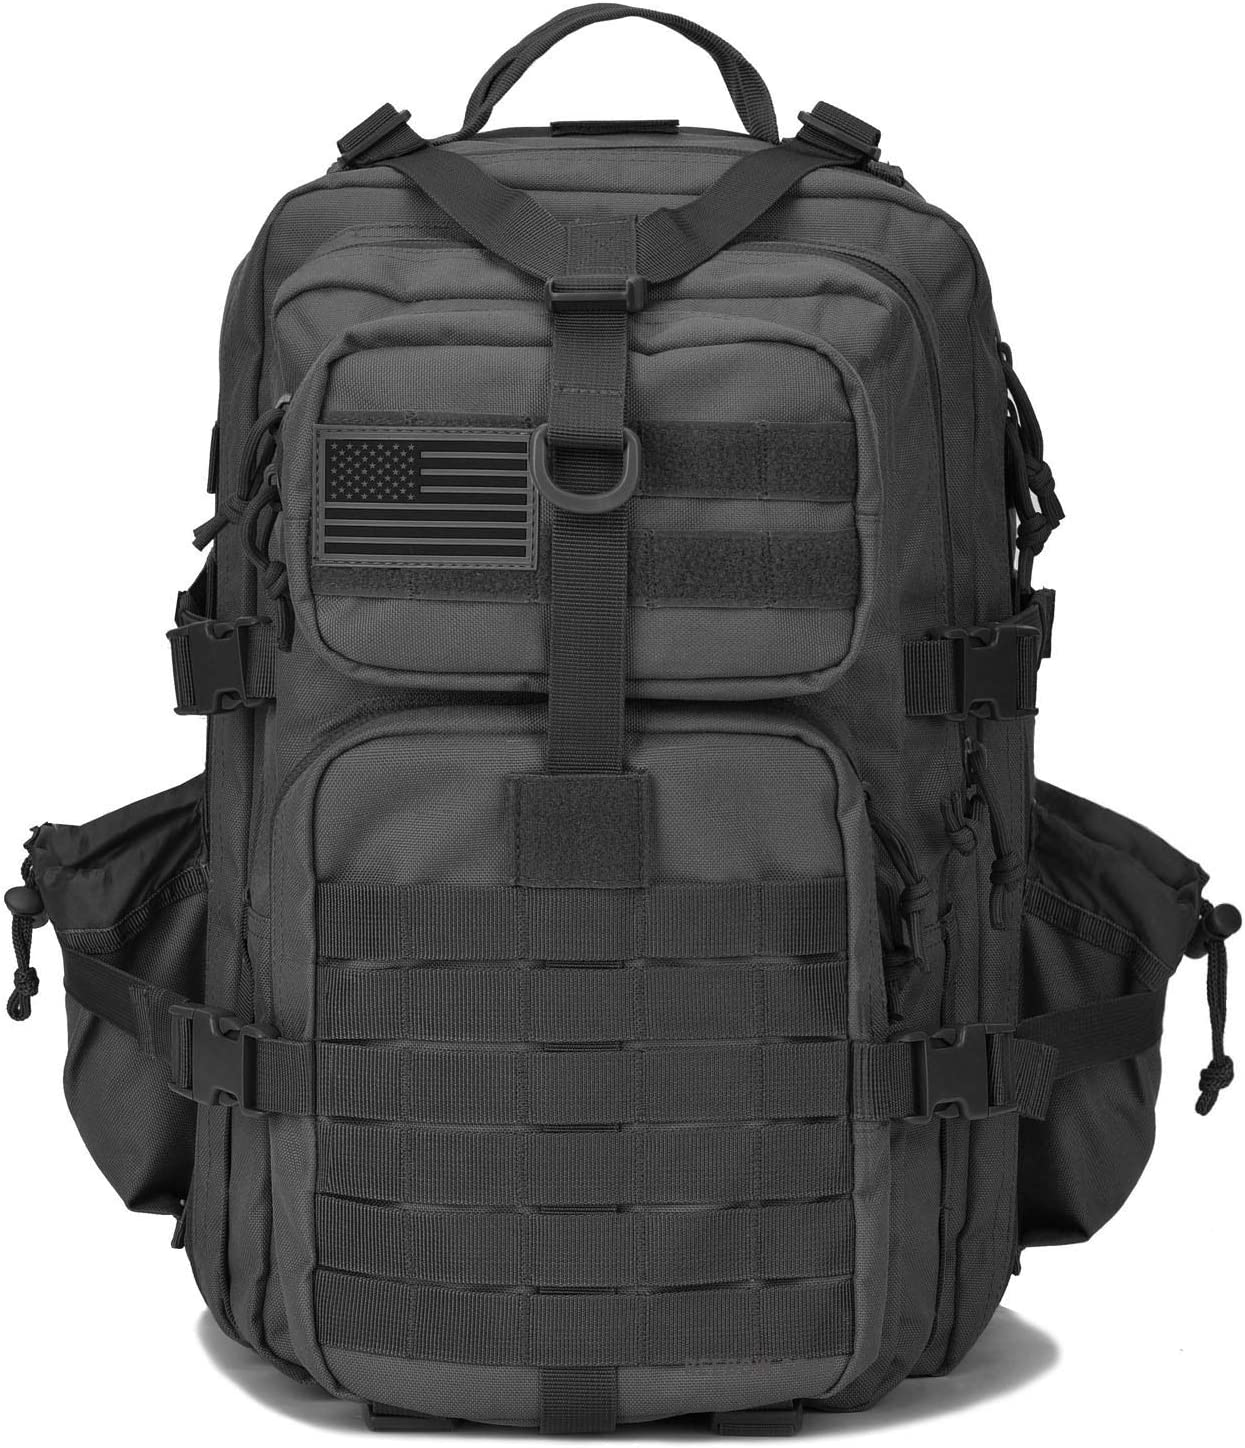 REEBOW TACTICAL Military Backpack 3 Day Cash special price Assault Molle Pack Army 25% OFF